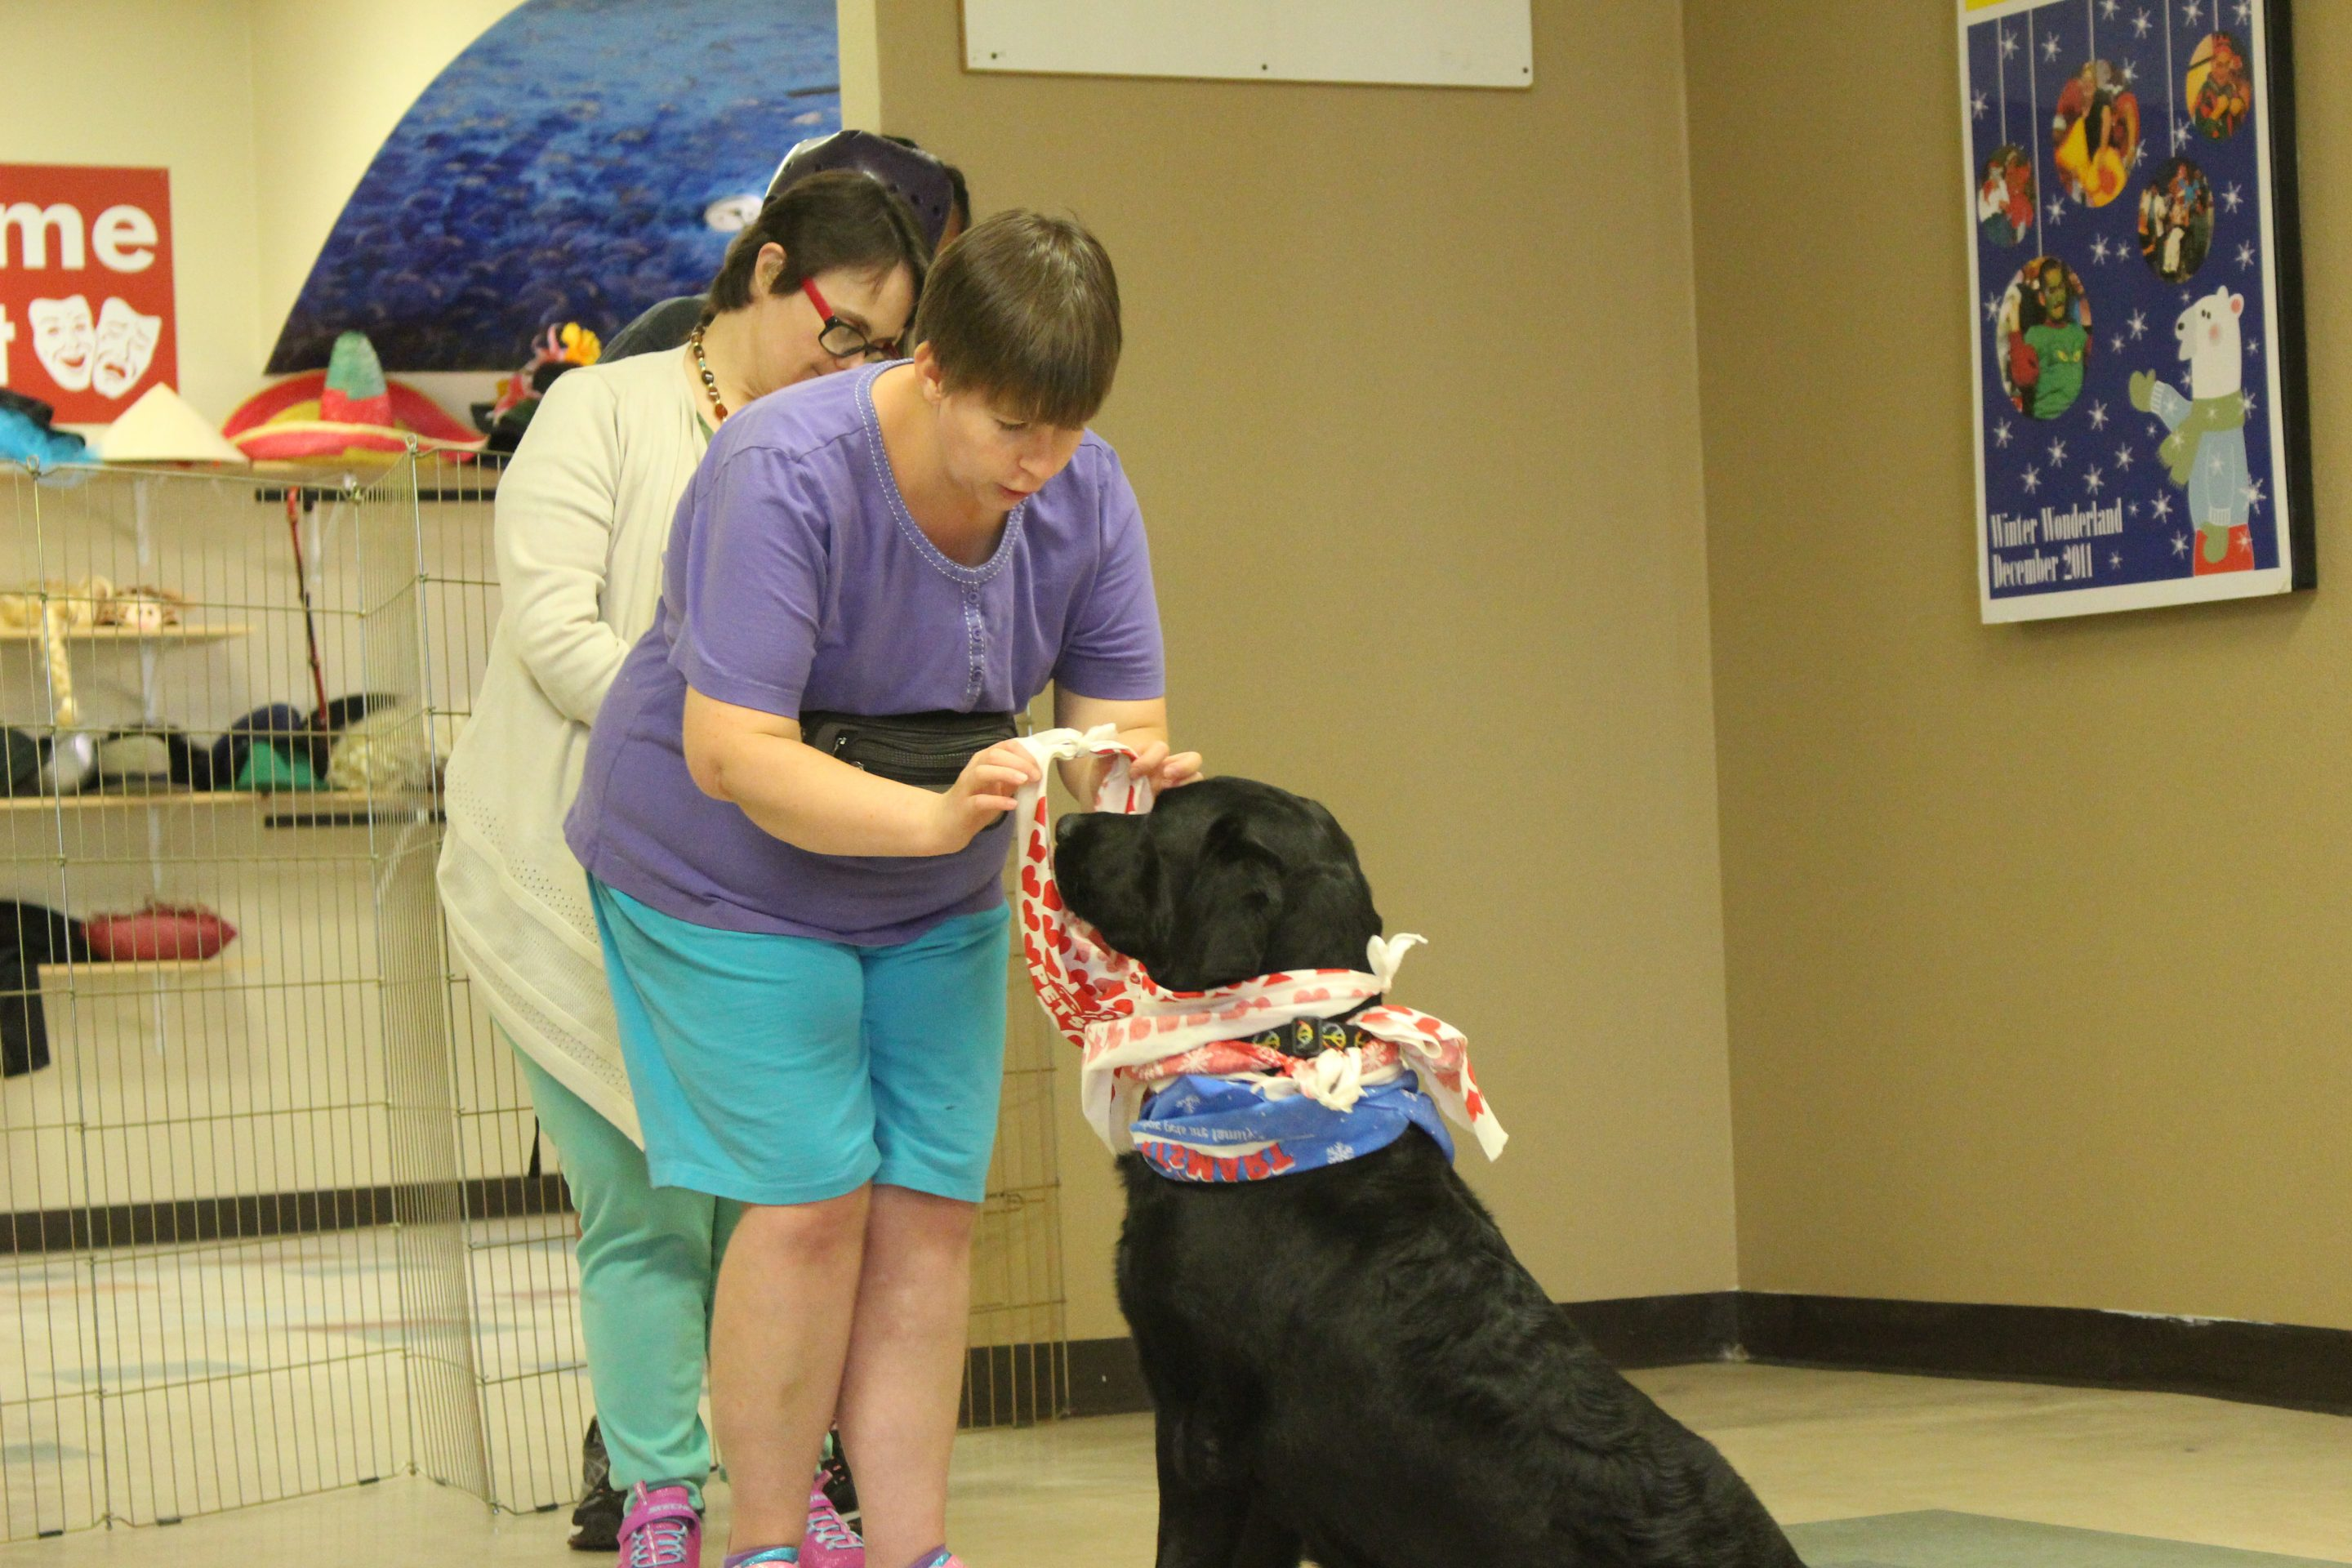 A woman puts a red and white bandana around a black Labrador's head. He is wearing several other colorful bandanas.